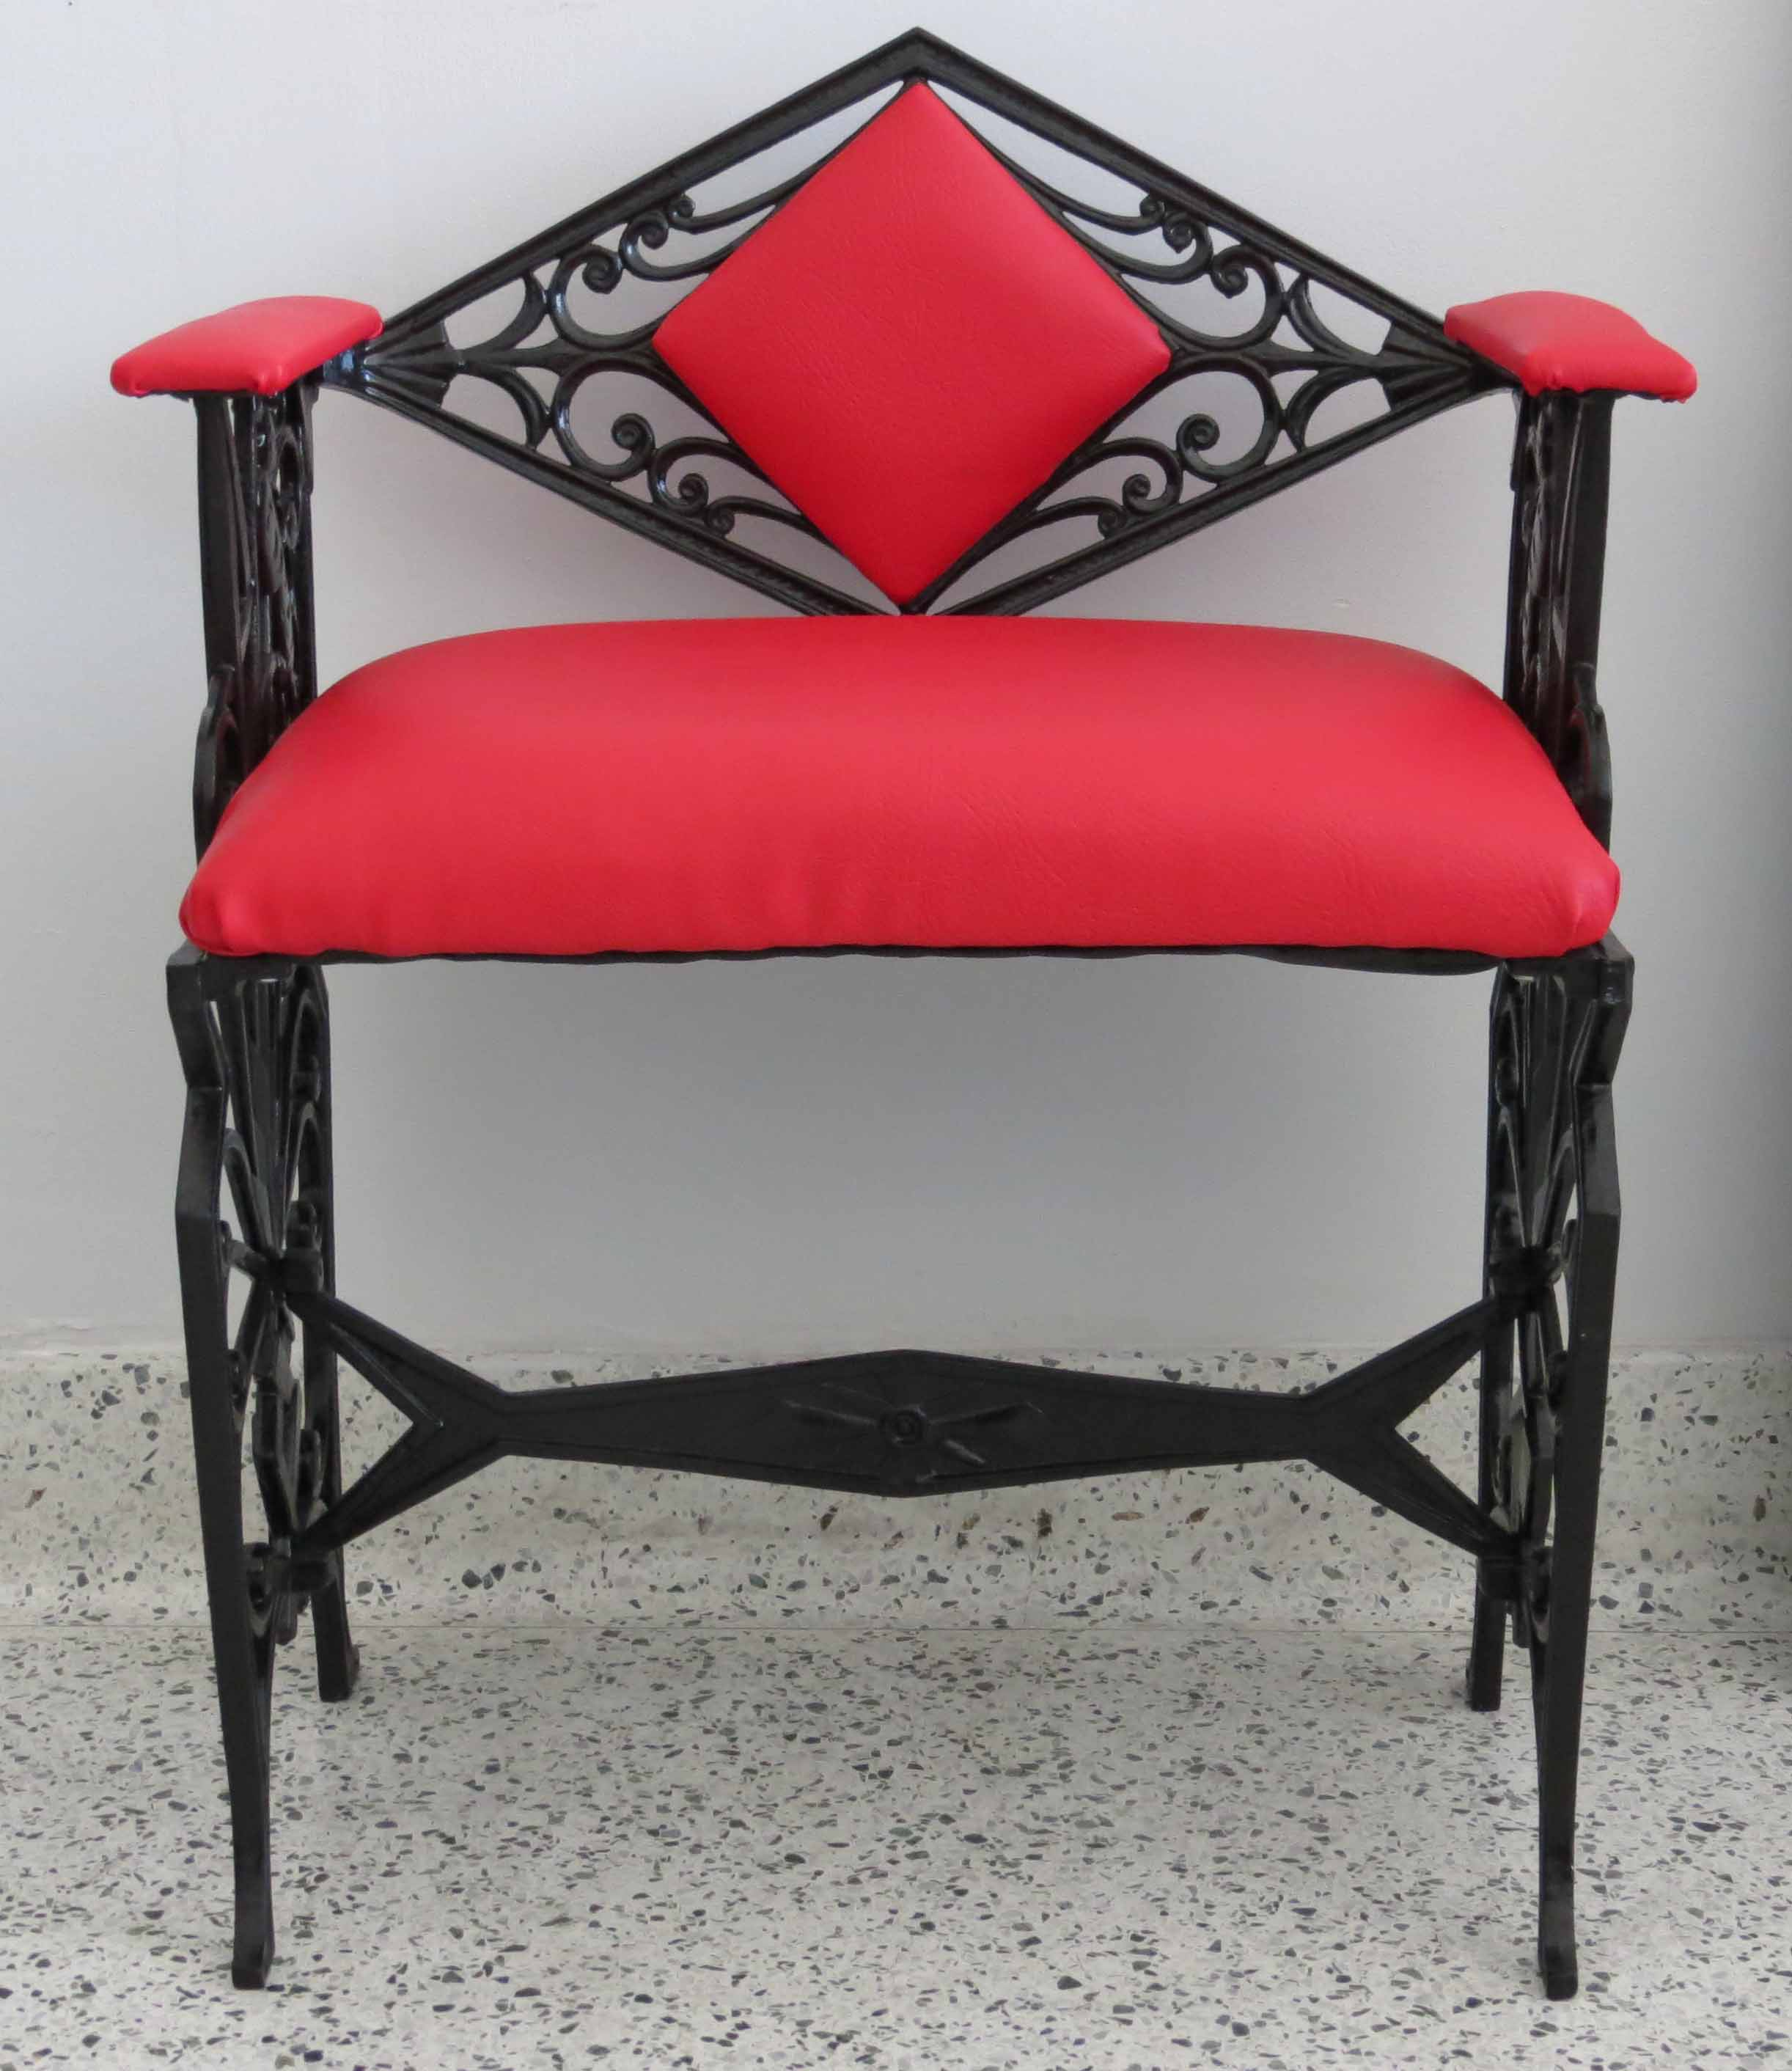 American Art Deco Furniture Cast Iron Bench Seat Modernism